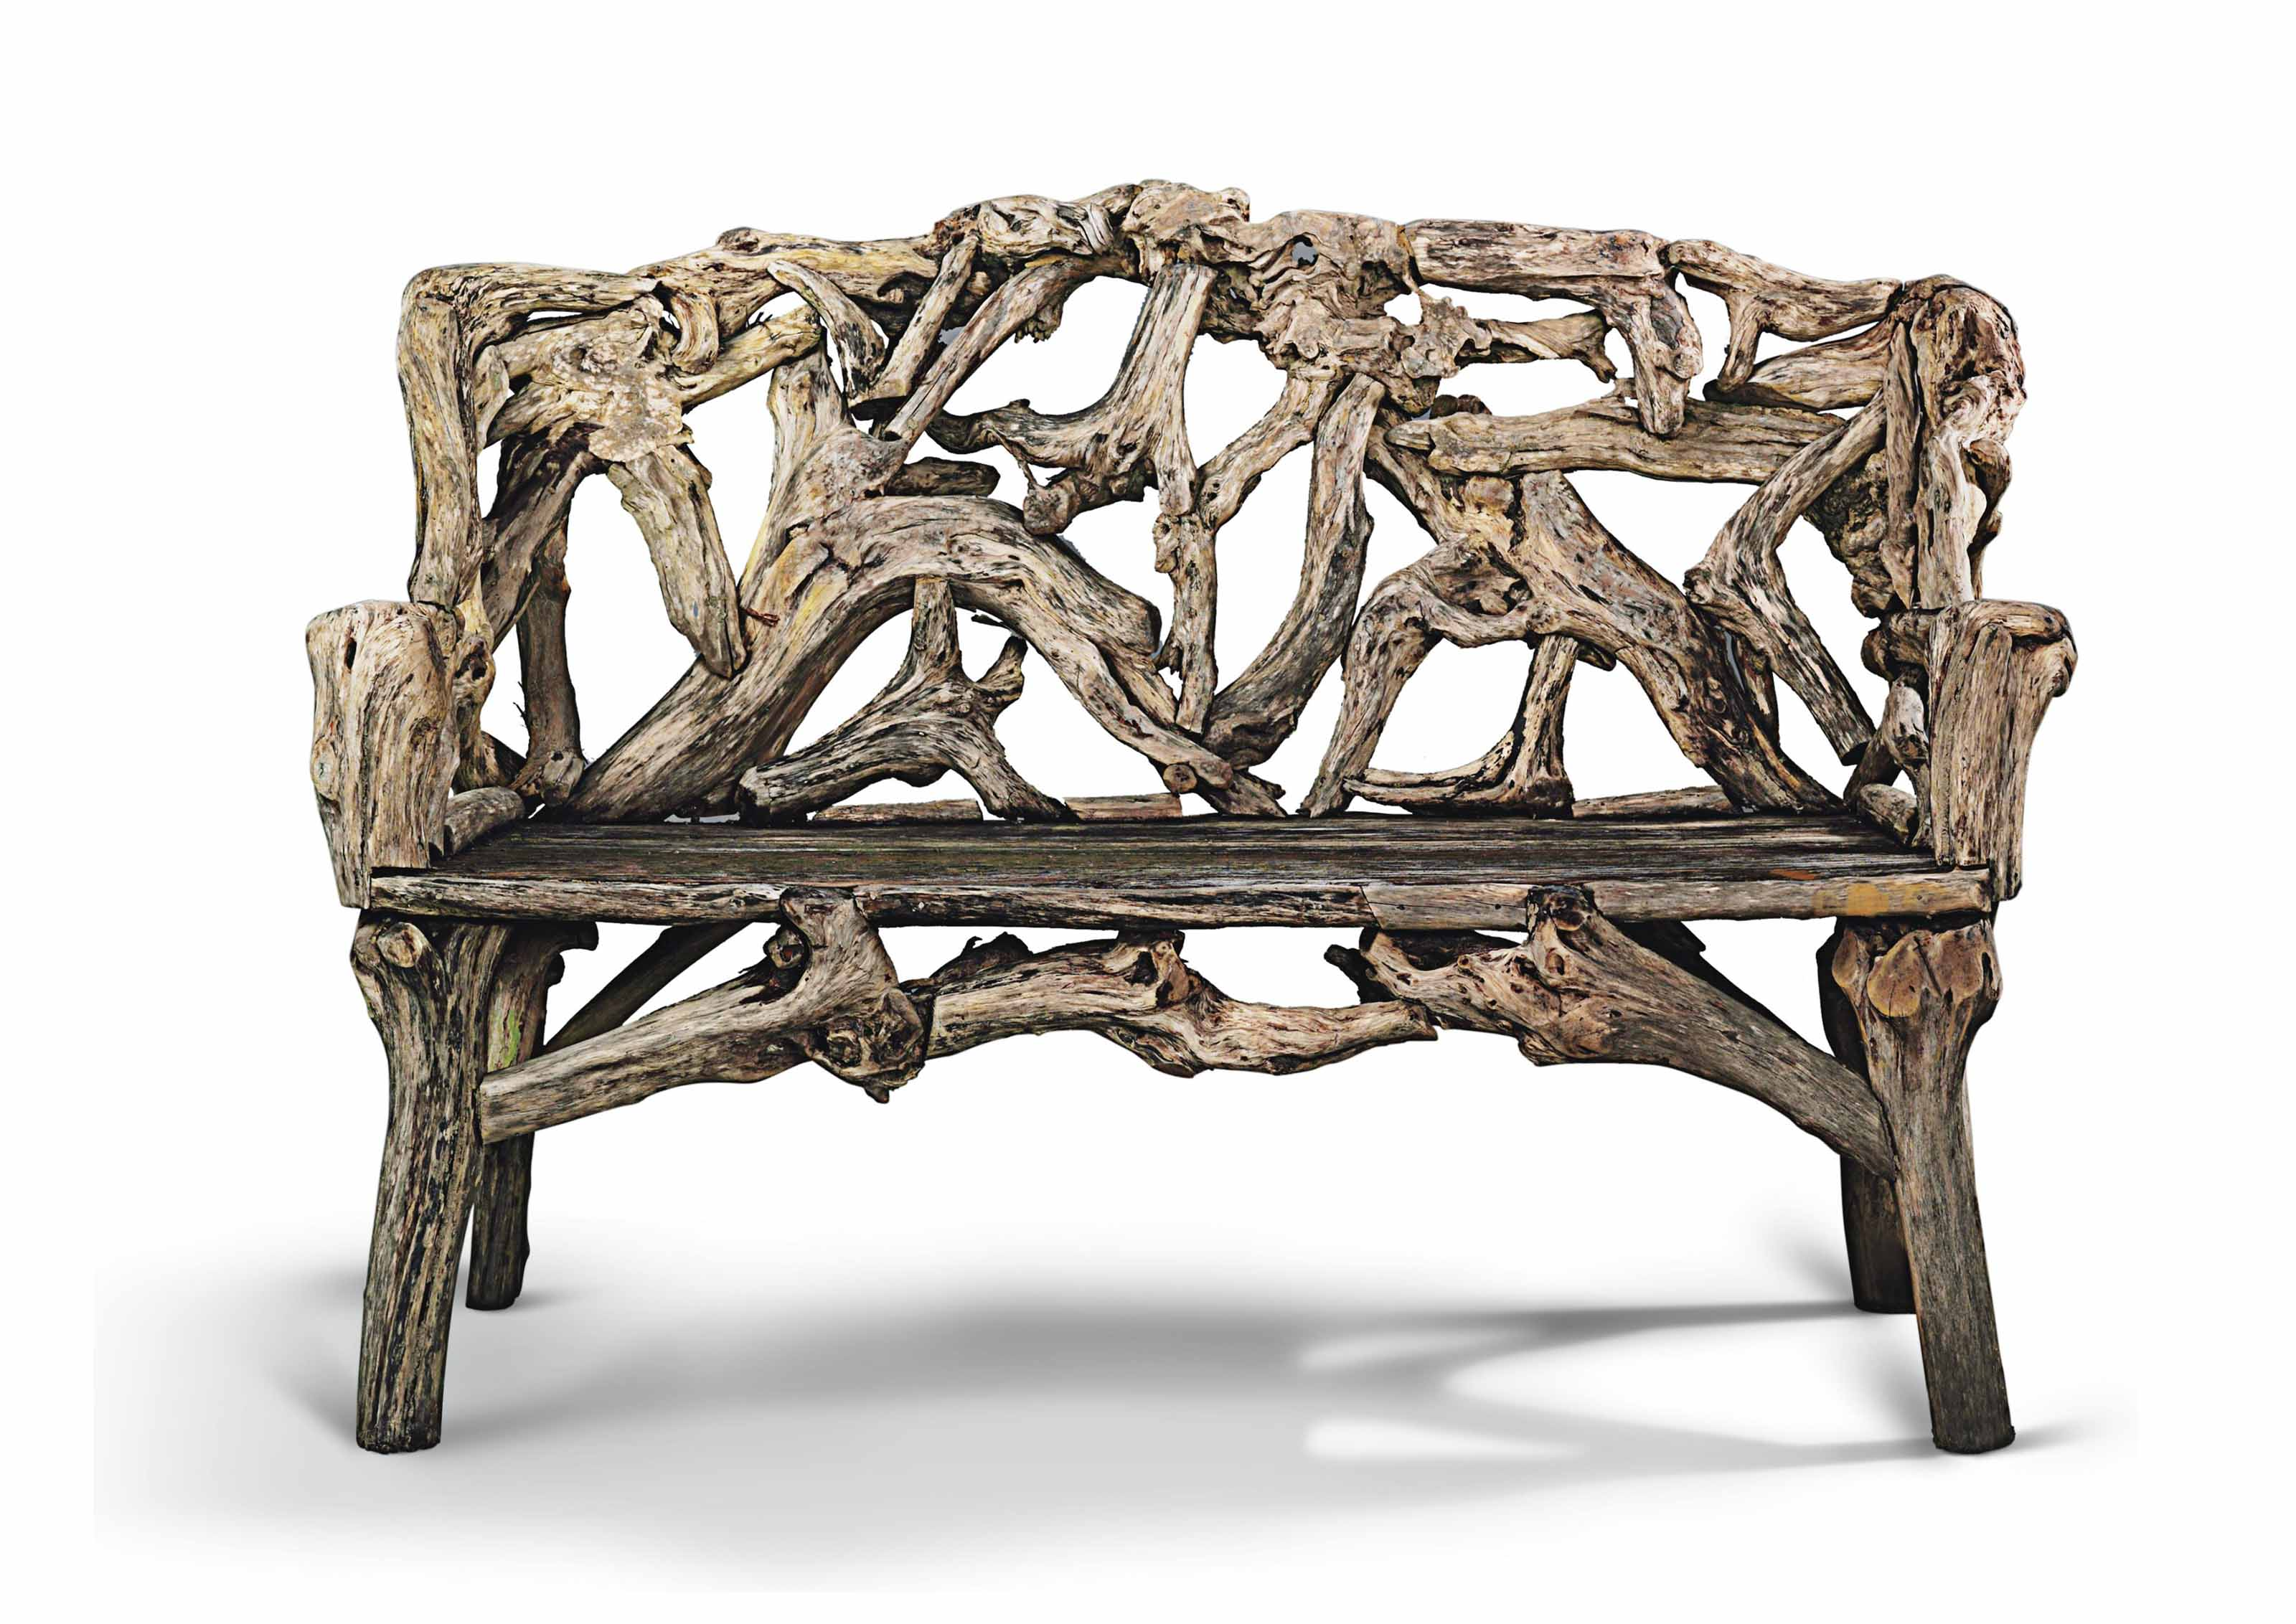 A ROOT WOOD GARDEN SEAT